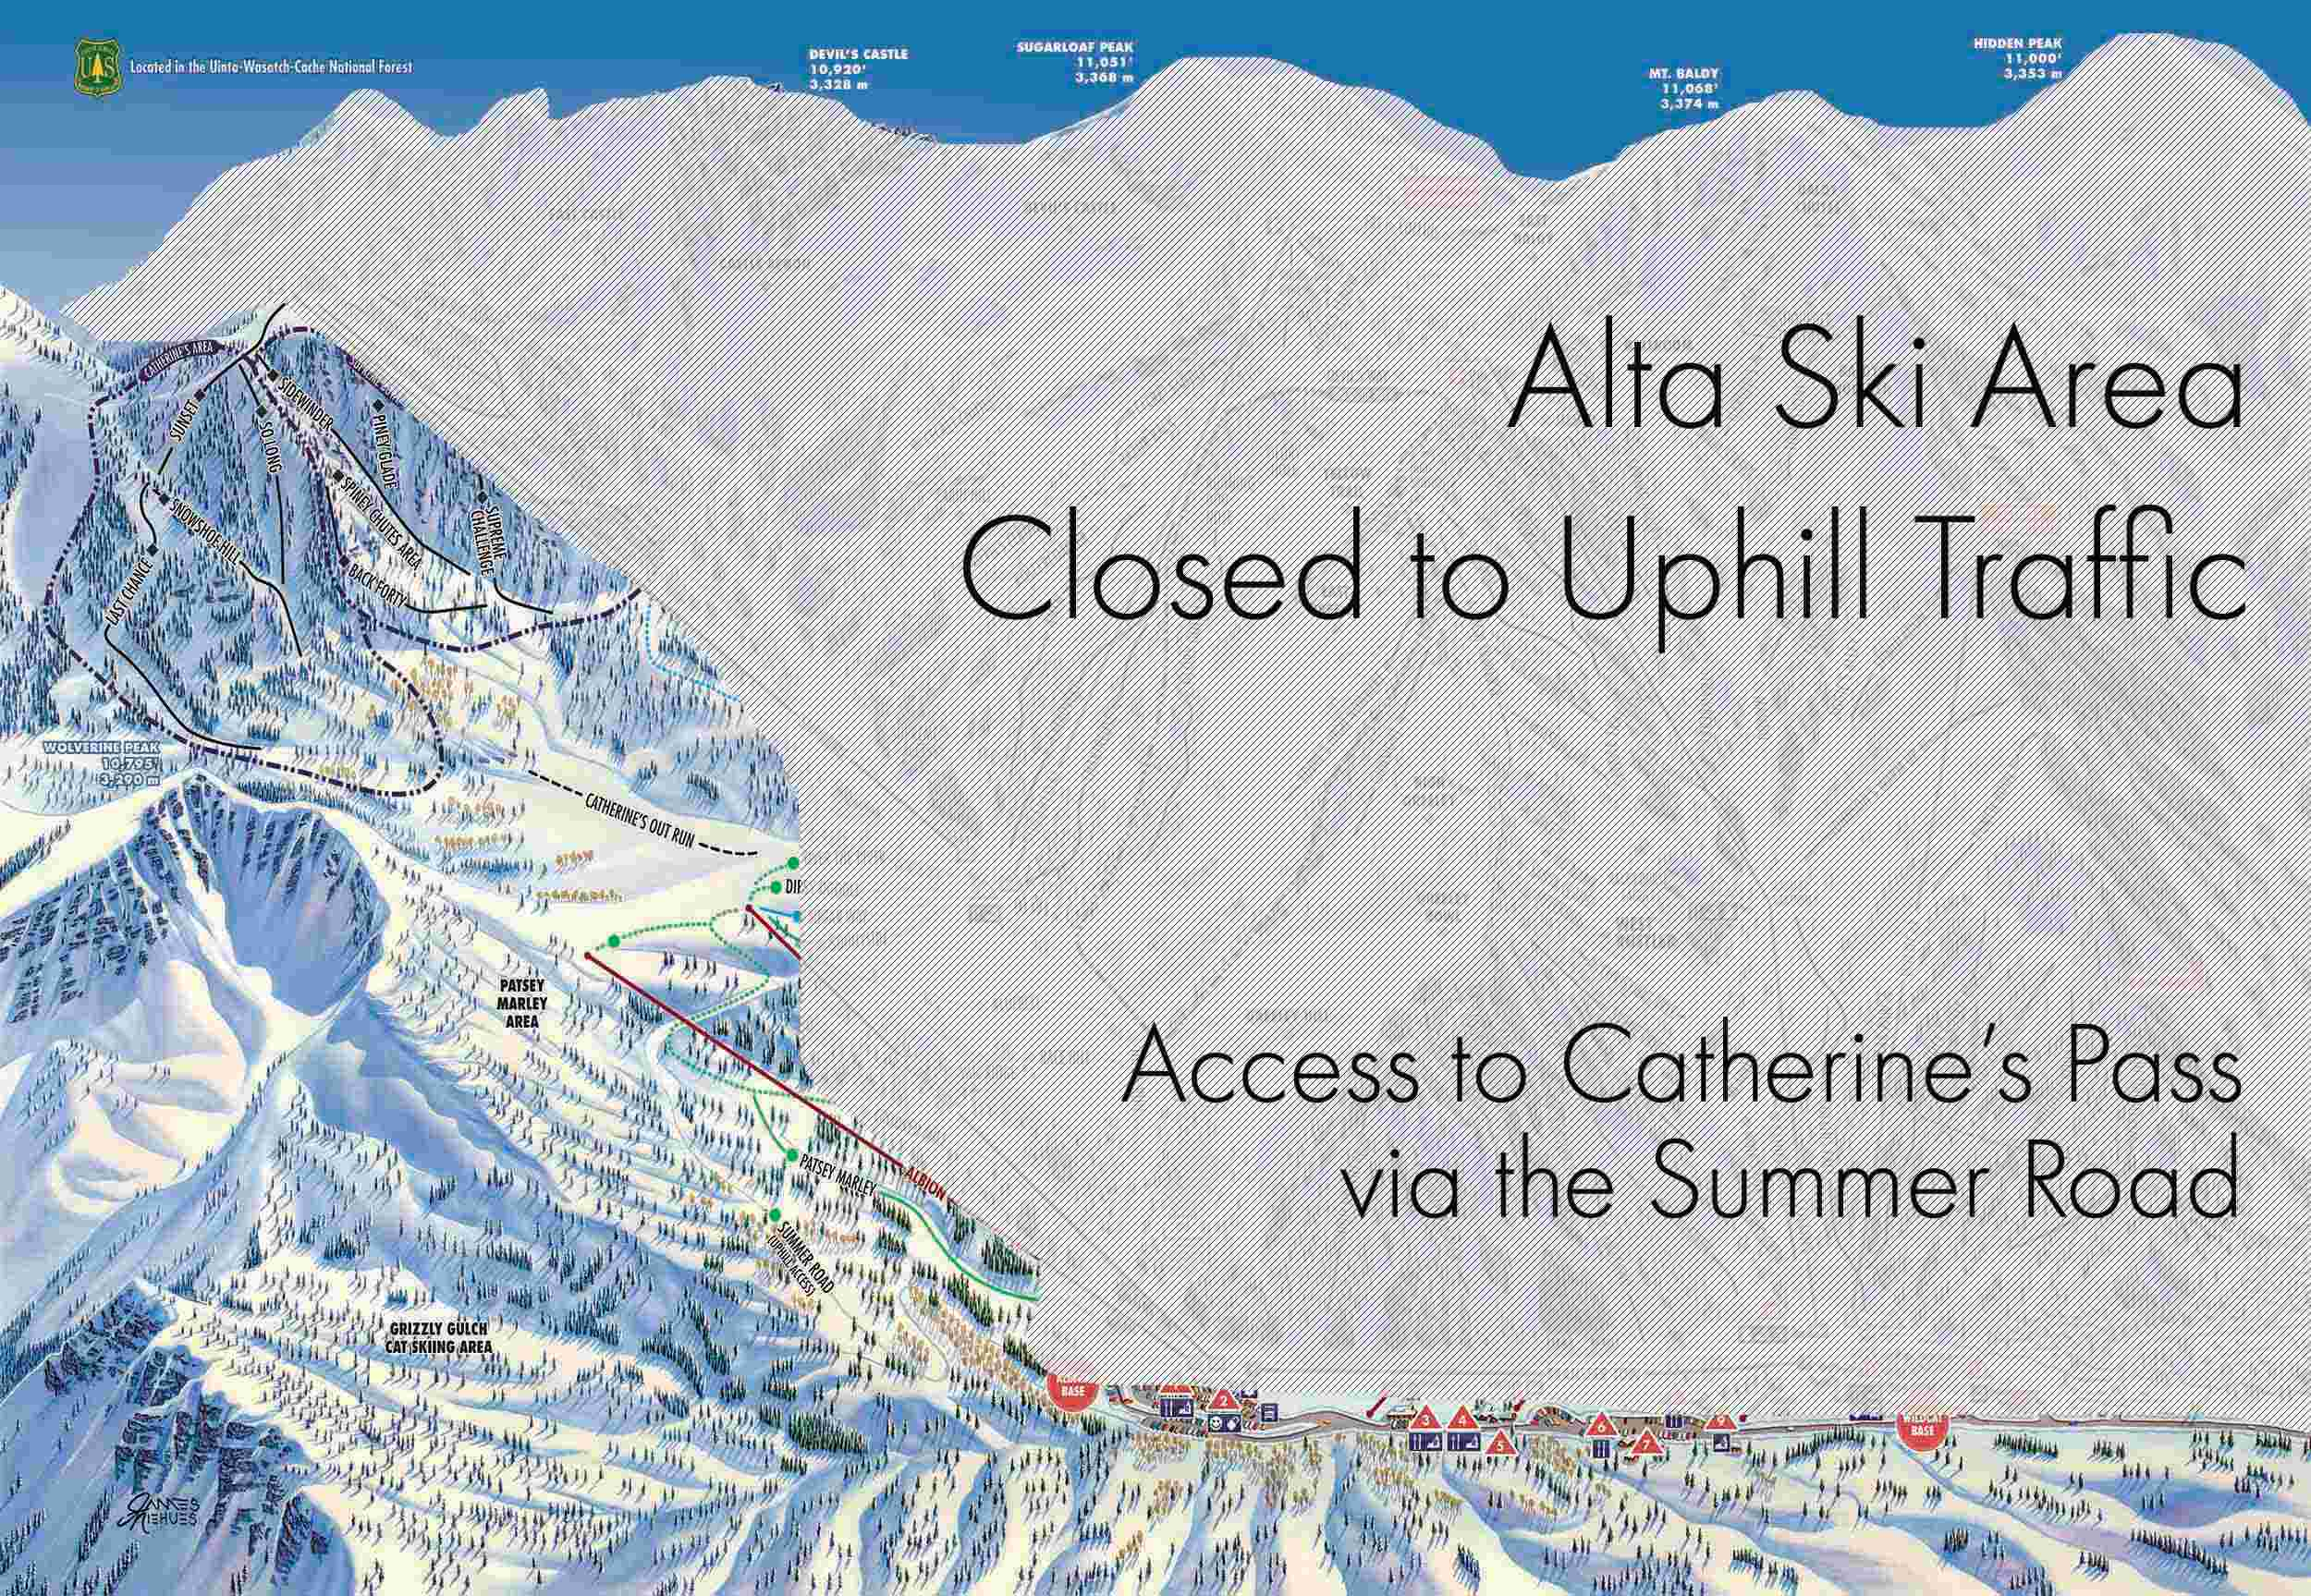 alta ski area, utah, no uphill traffic,